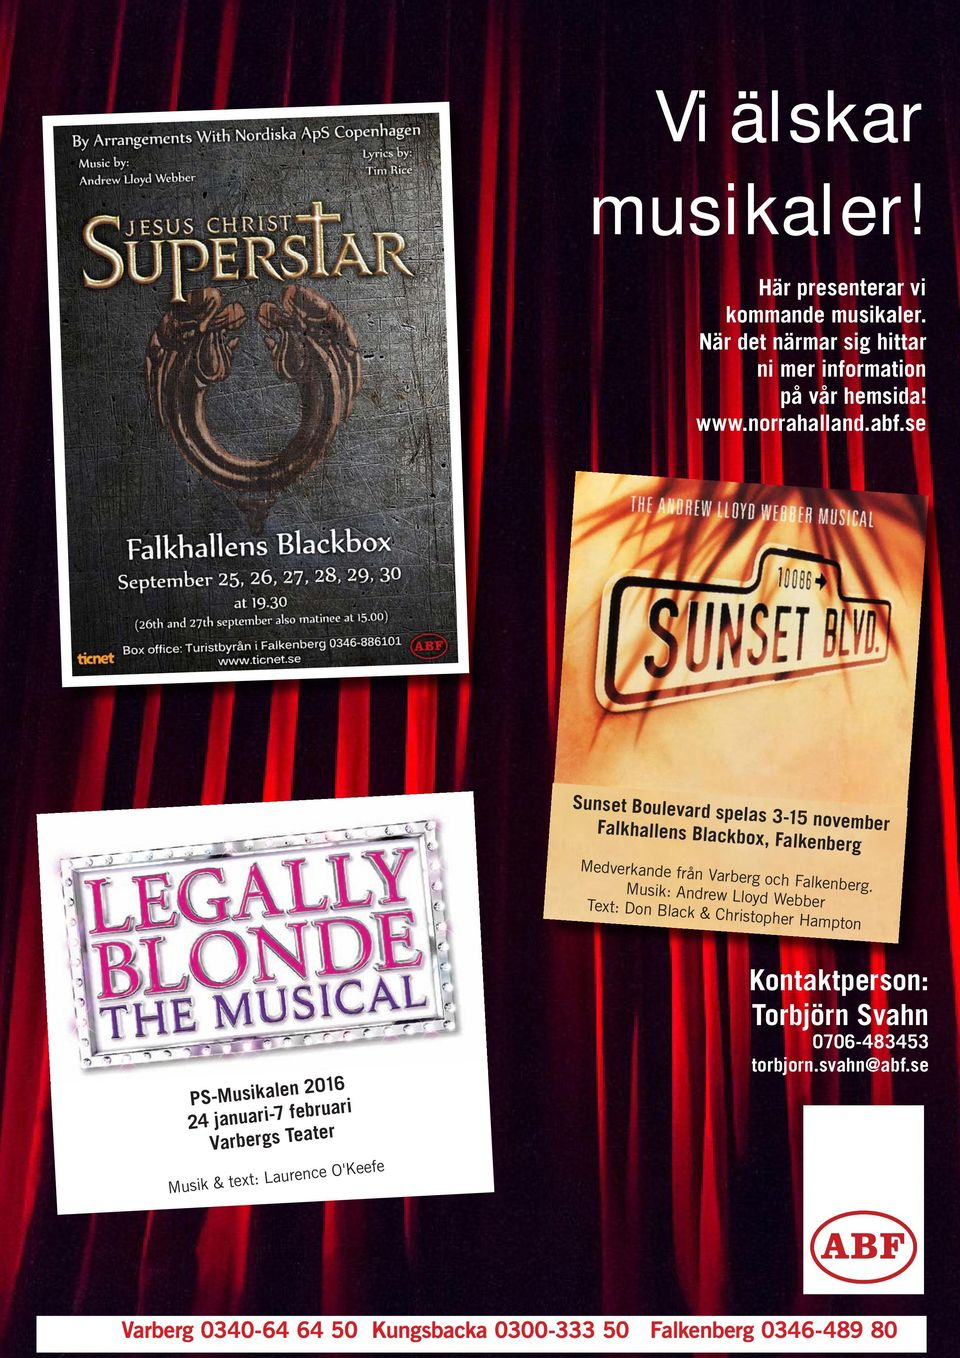 Musik: Andrew Lloyd Webber Text: Don Black & Christopher Hampton PS-Musikalen 2016 24 januari-7 februari Varbergs Teater Musik & text: